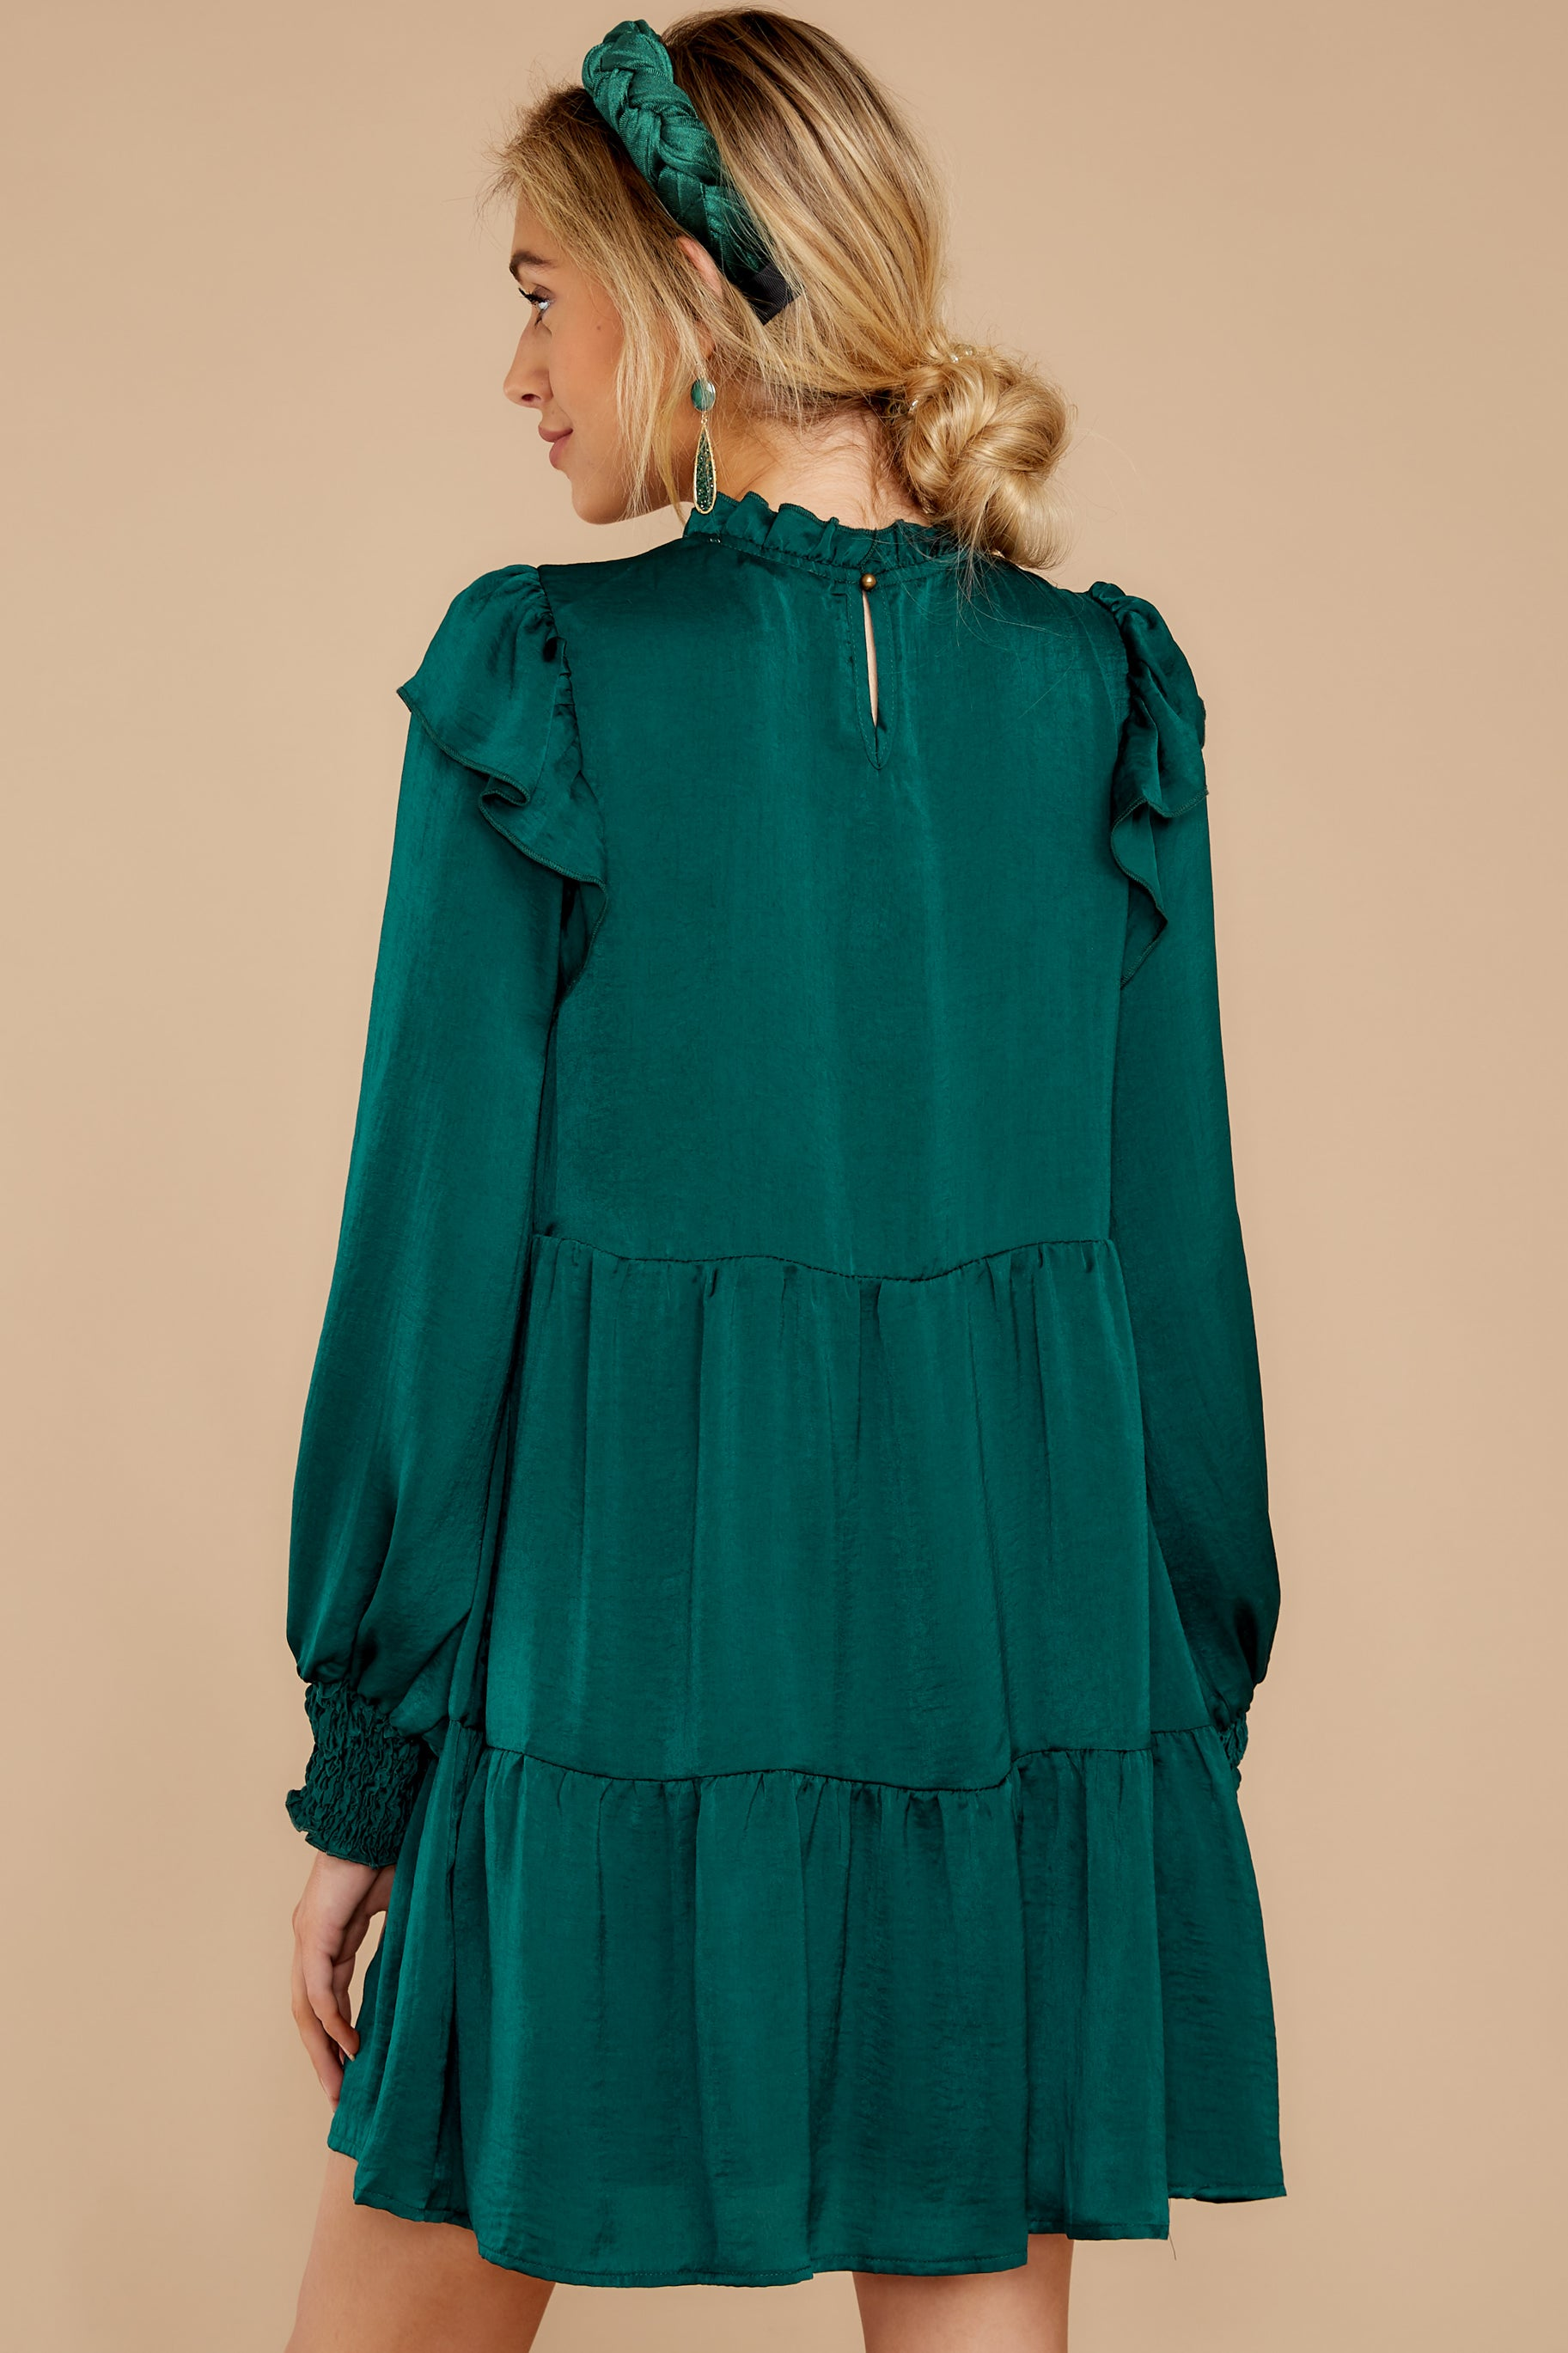 7 On My Level Emerald Green Dress at reddressboutique.com